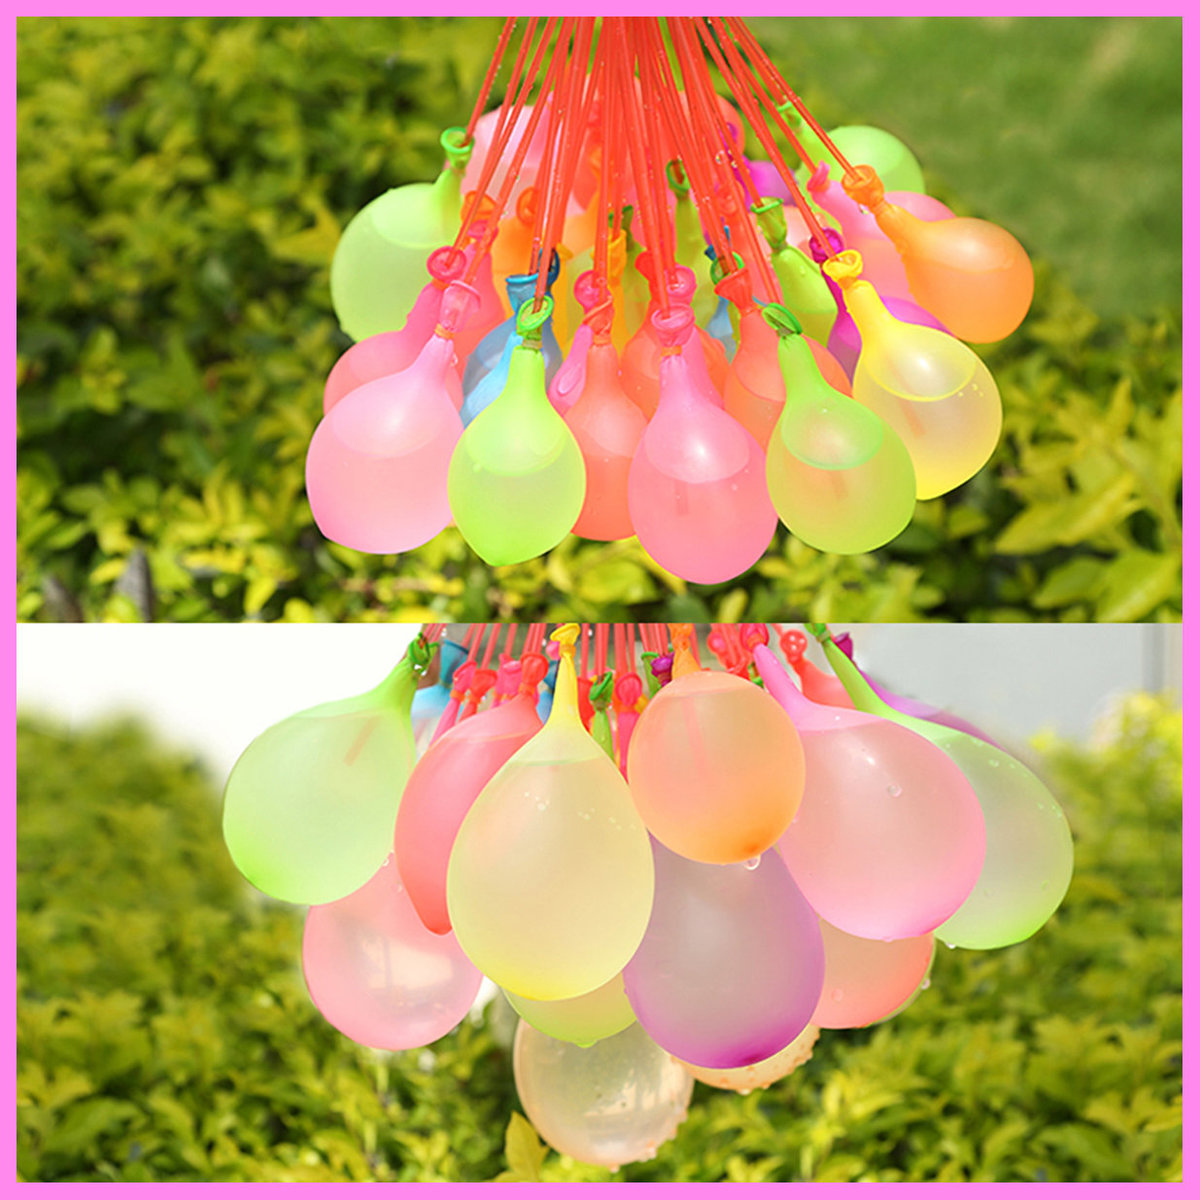 3 Pcs Easy Water Balloon Filling Set - Fills within 60 Sec